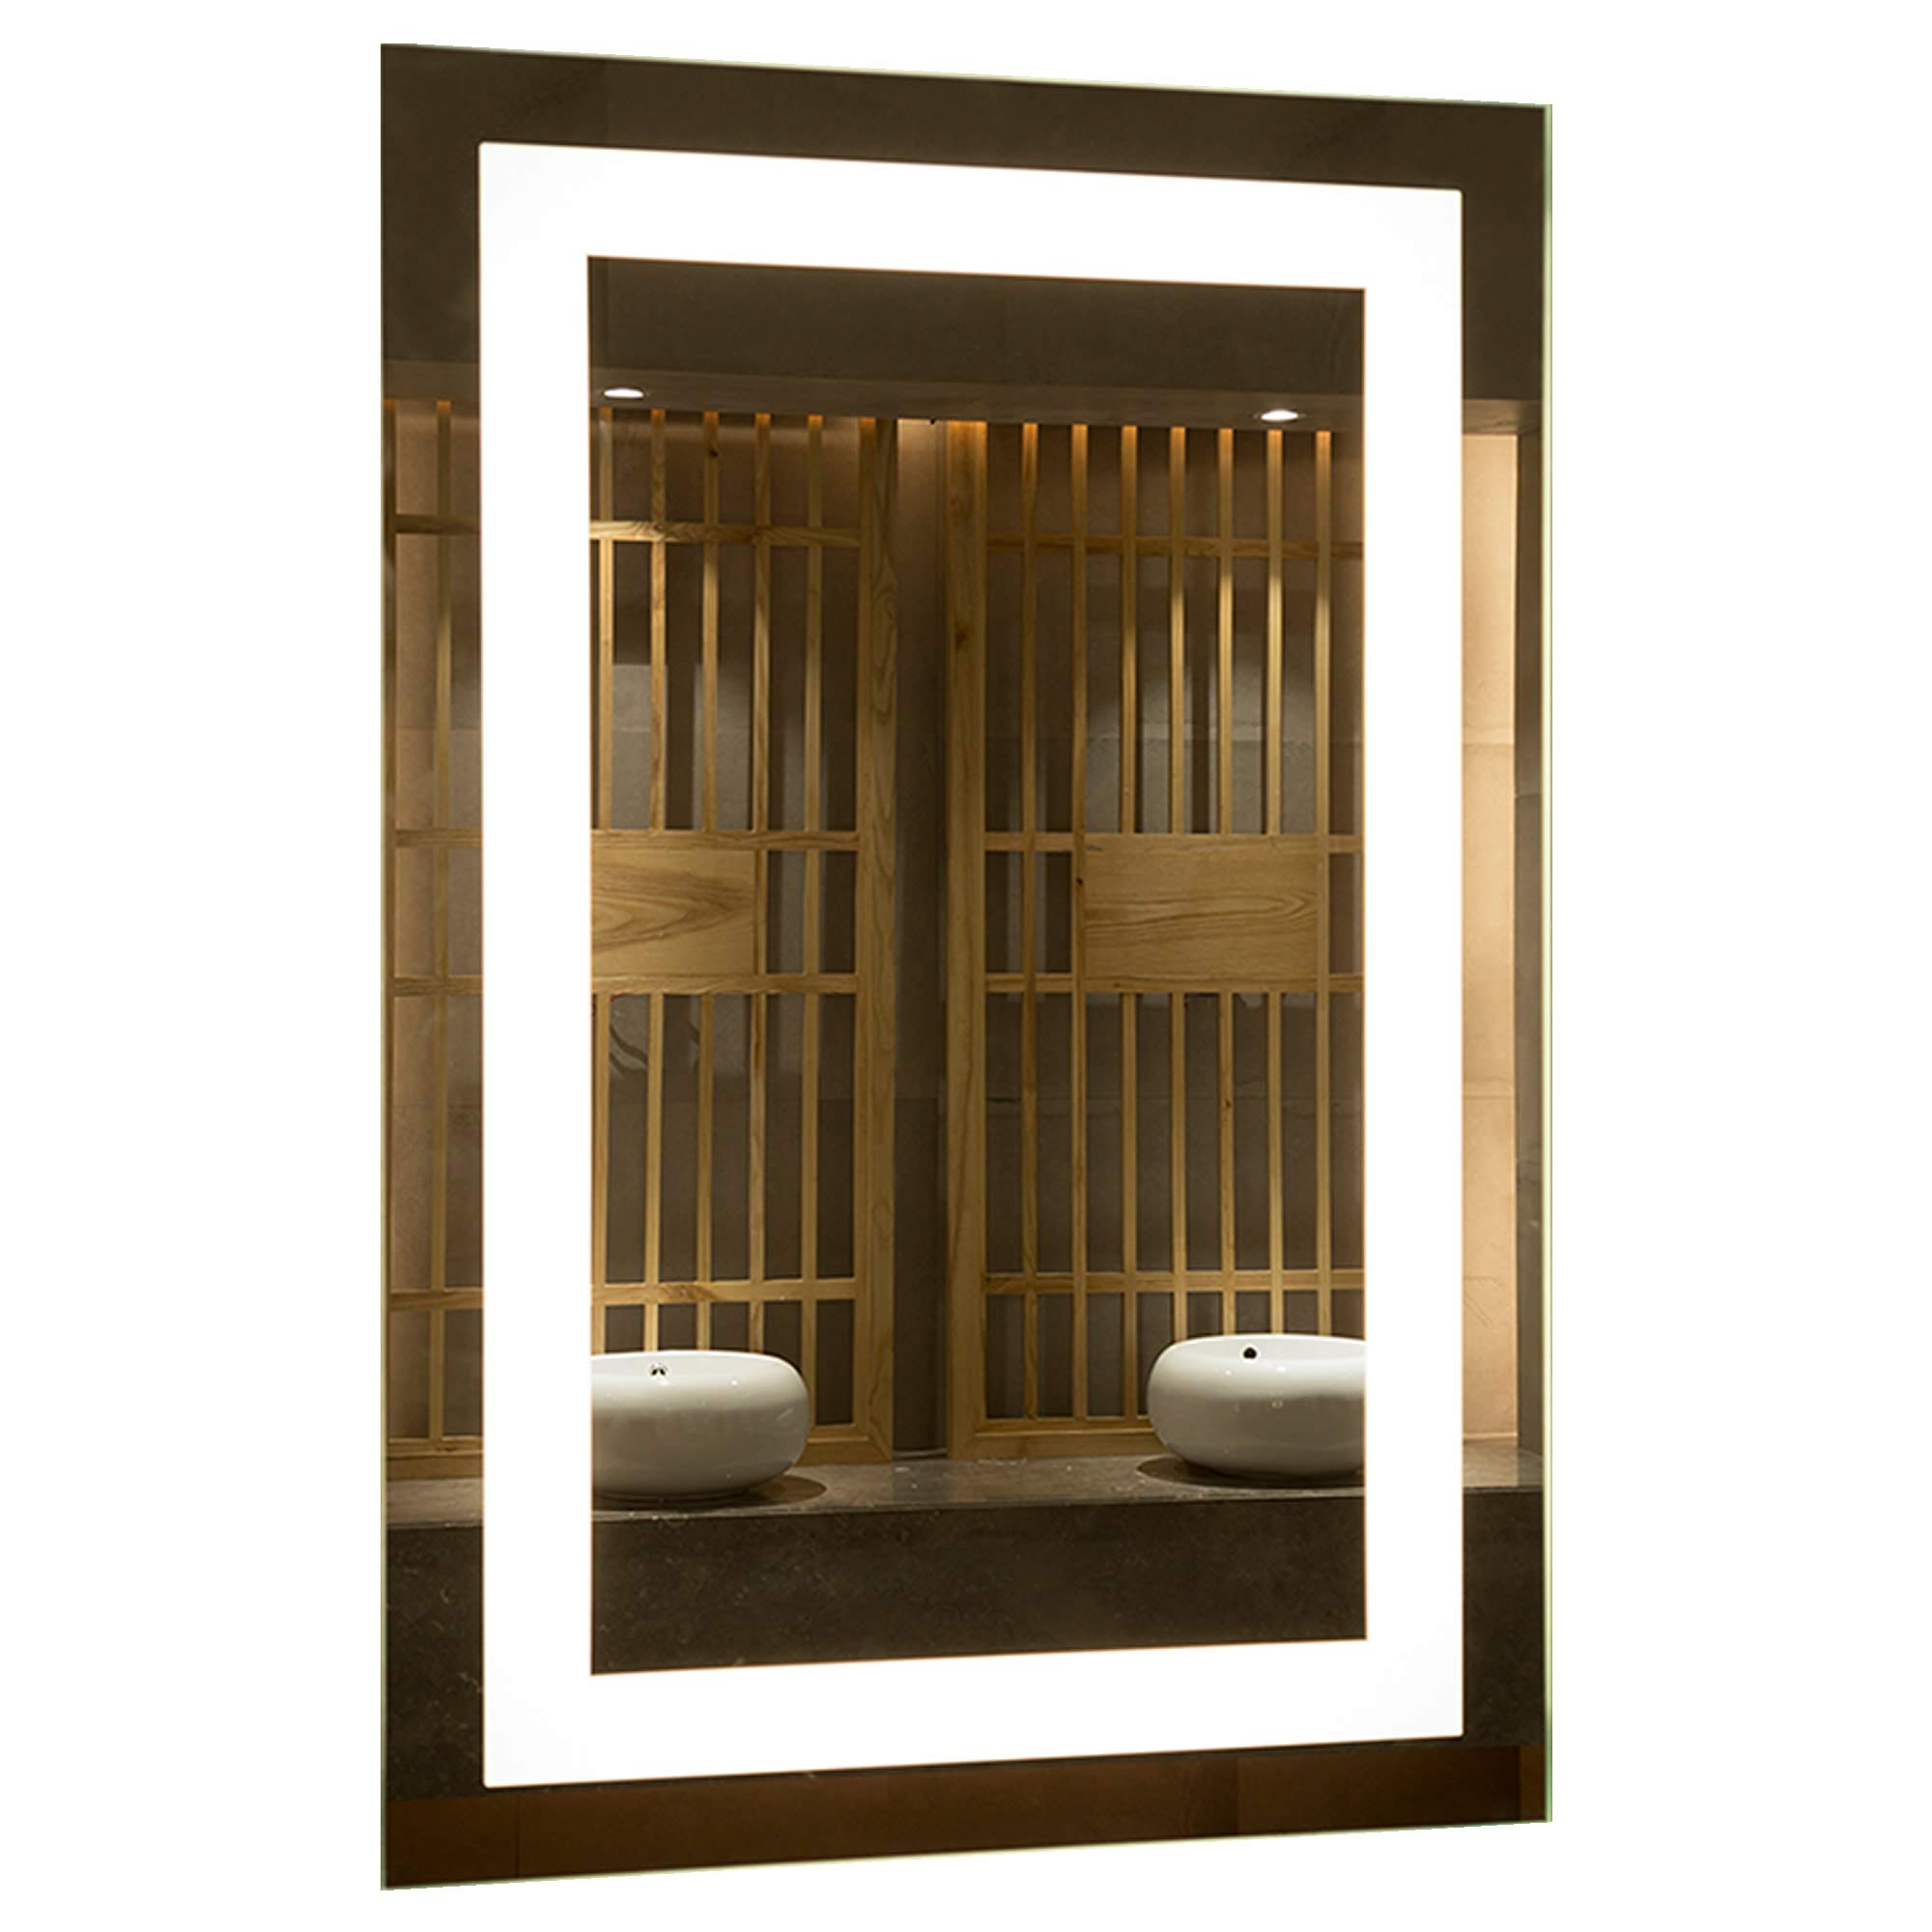 Mirrors and More LED Backlit Wall Mirror | Frameless Polished Edge Silver Backing with Rectangle Illuminated Frosted Strip | Vanity | Bathroom | Makeup | 24'' X 36''